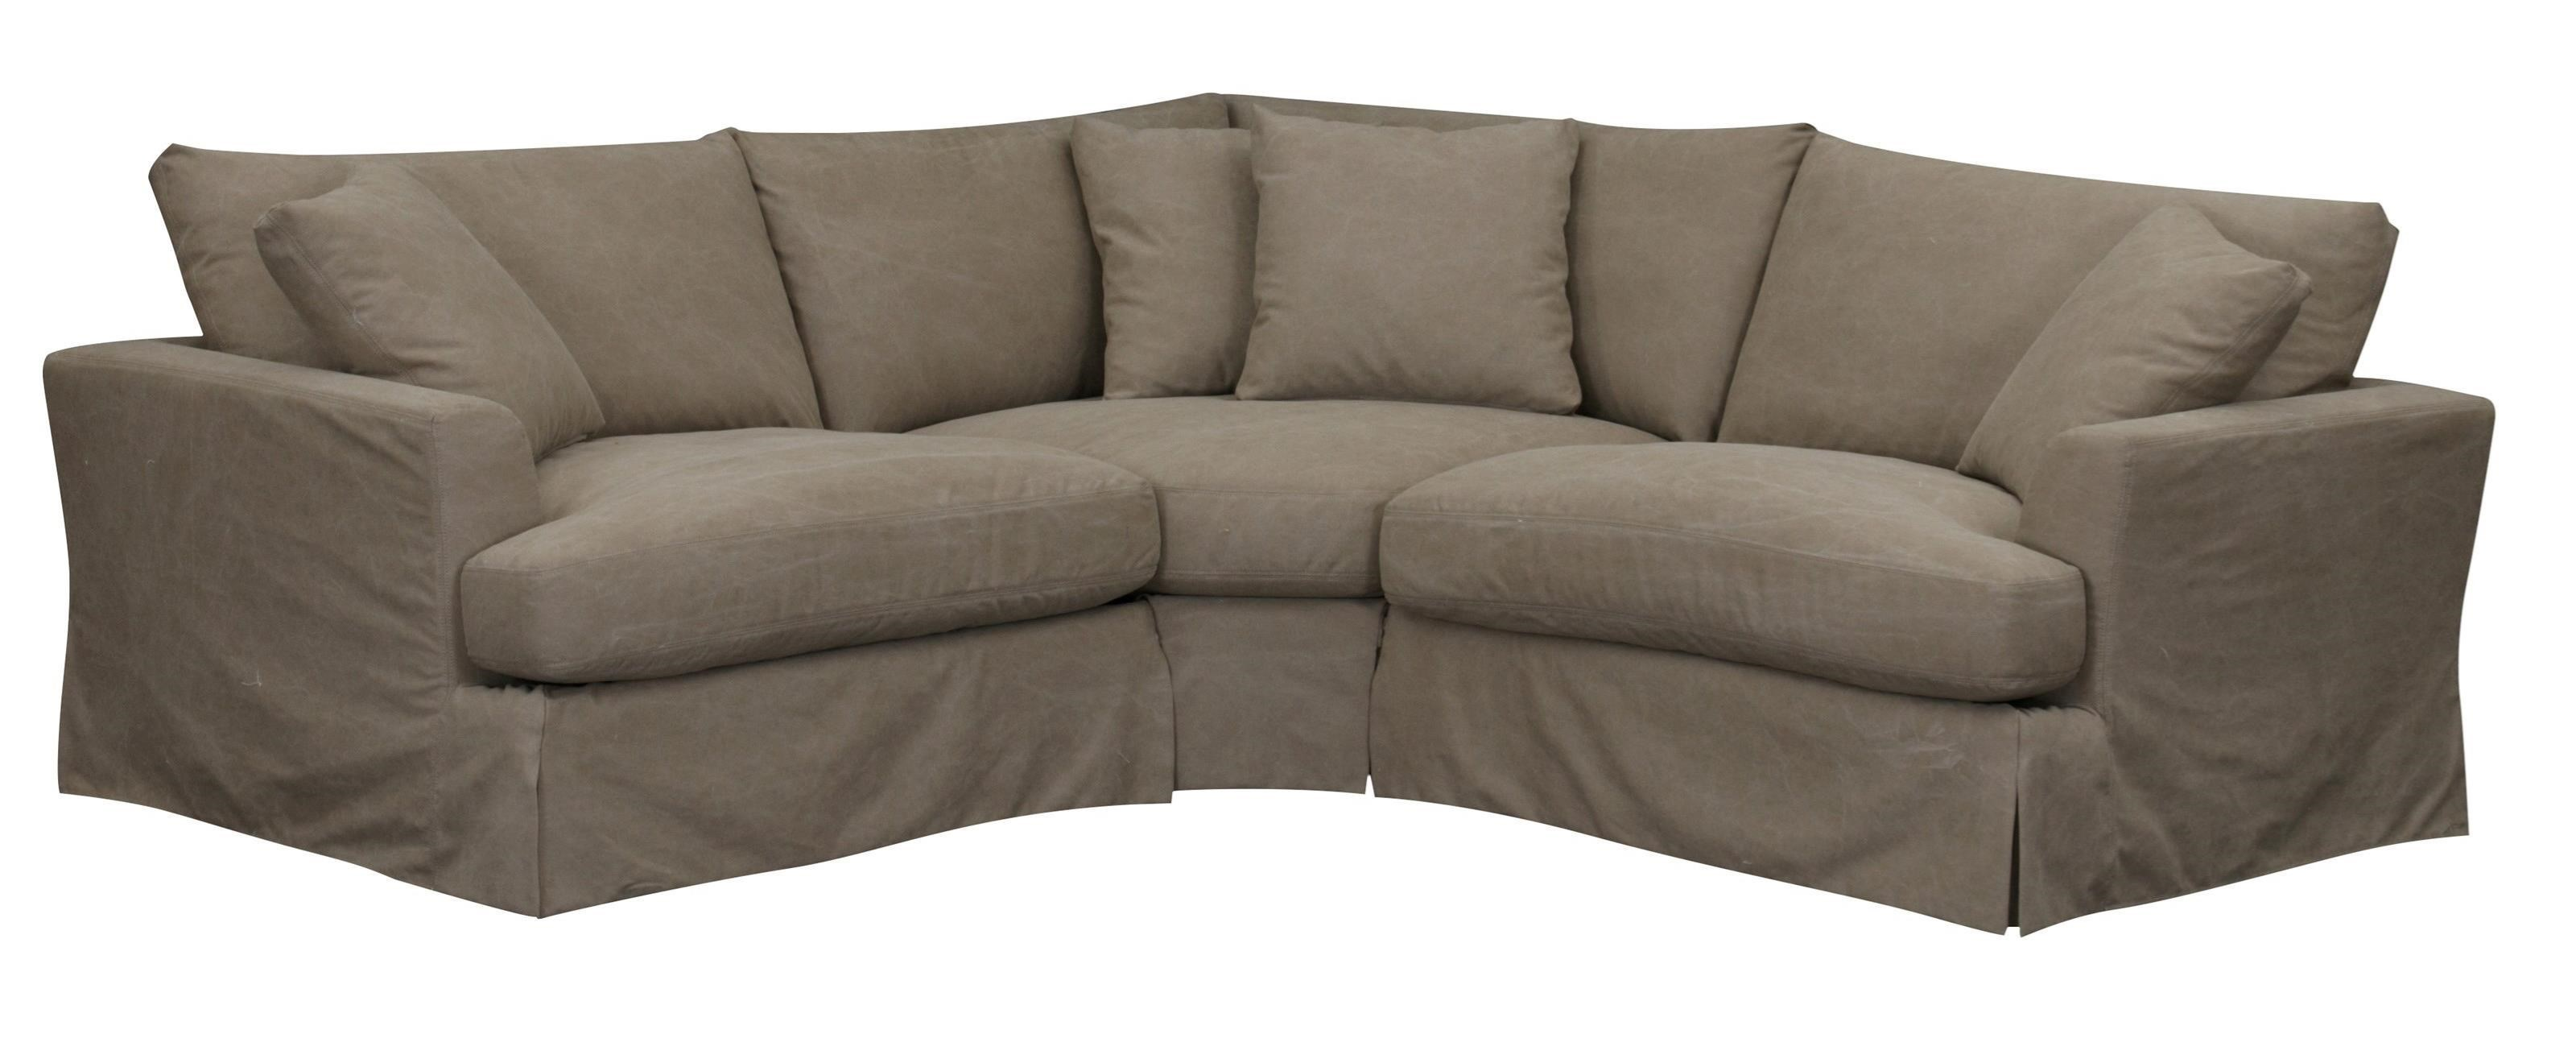 Synergy Home Furnishings 13003 Pc Sectional Sofa ...